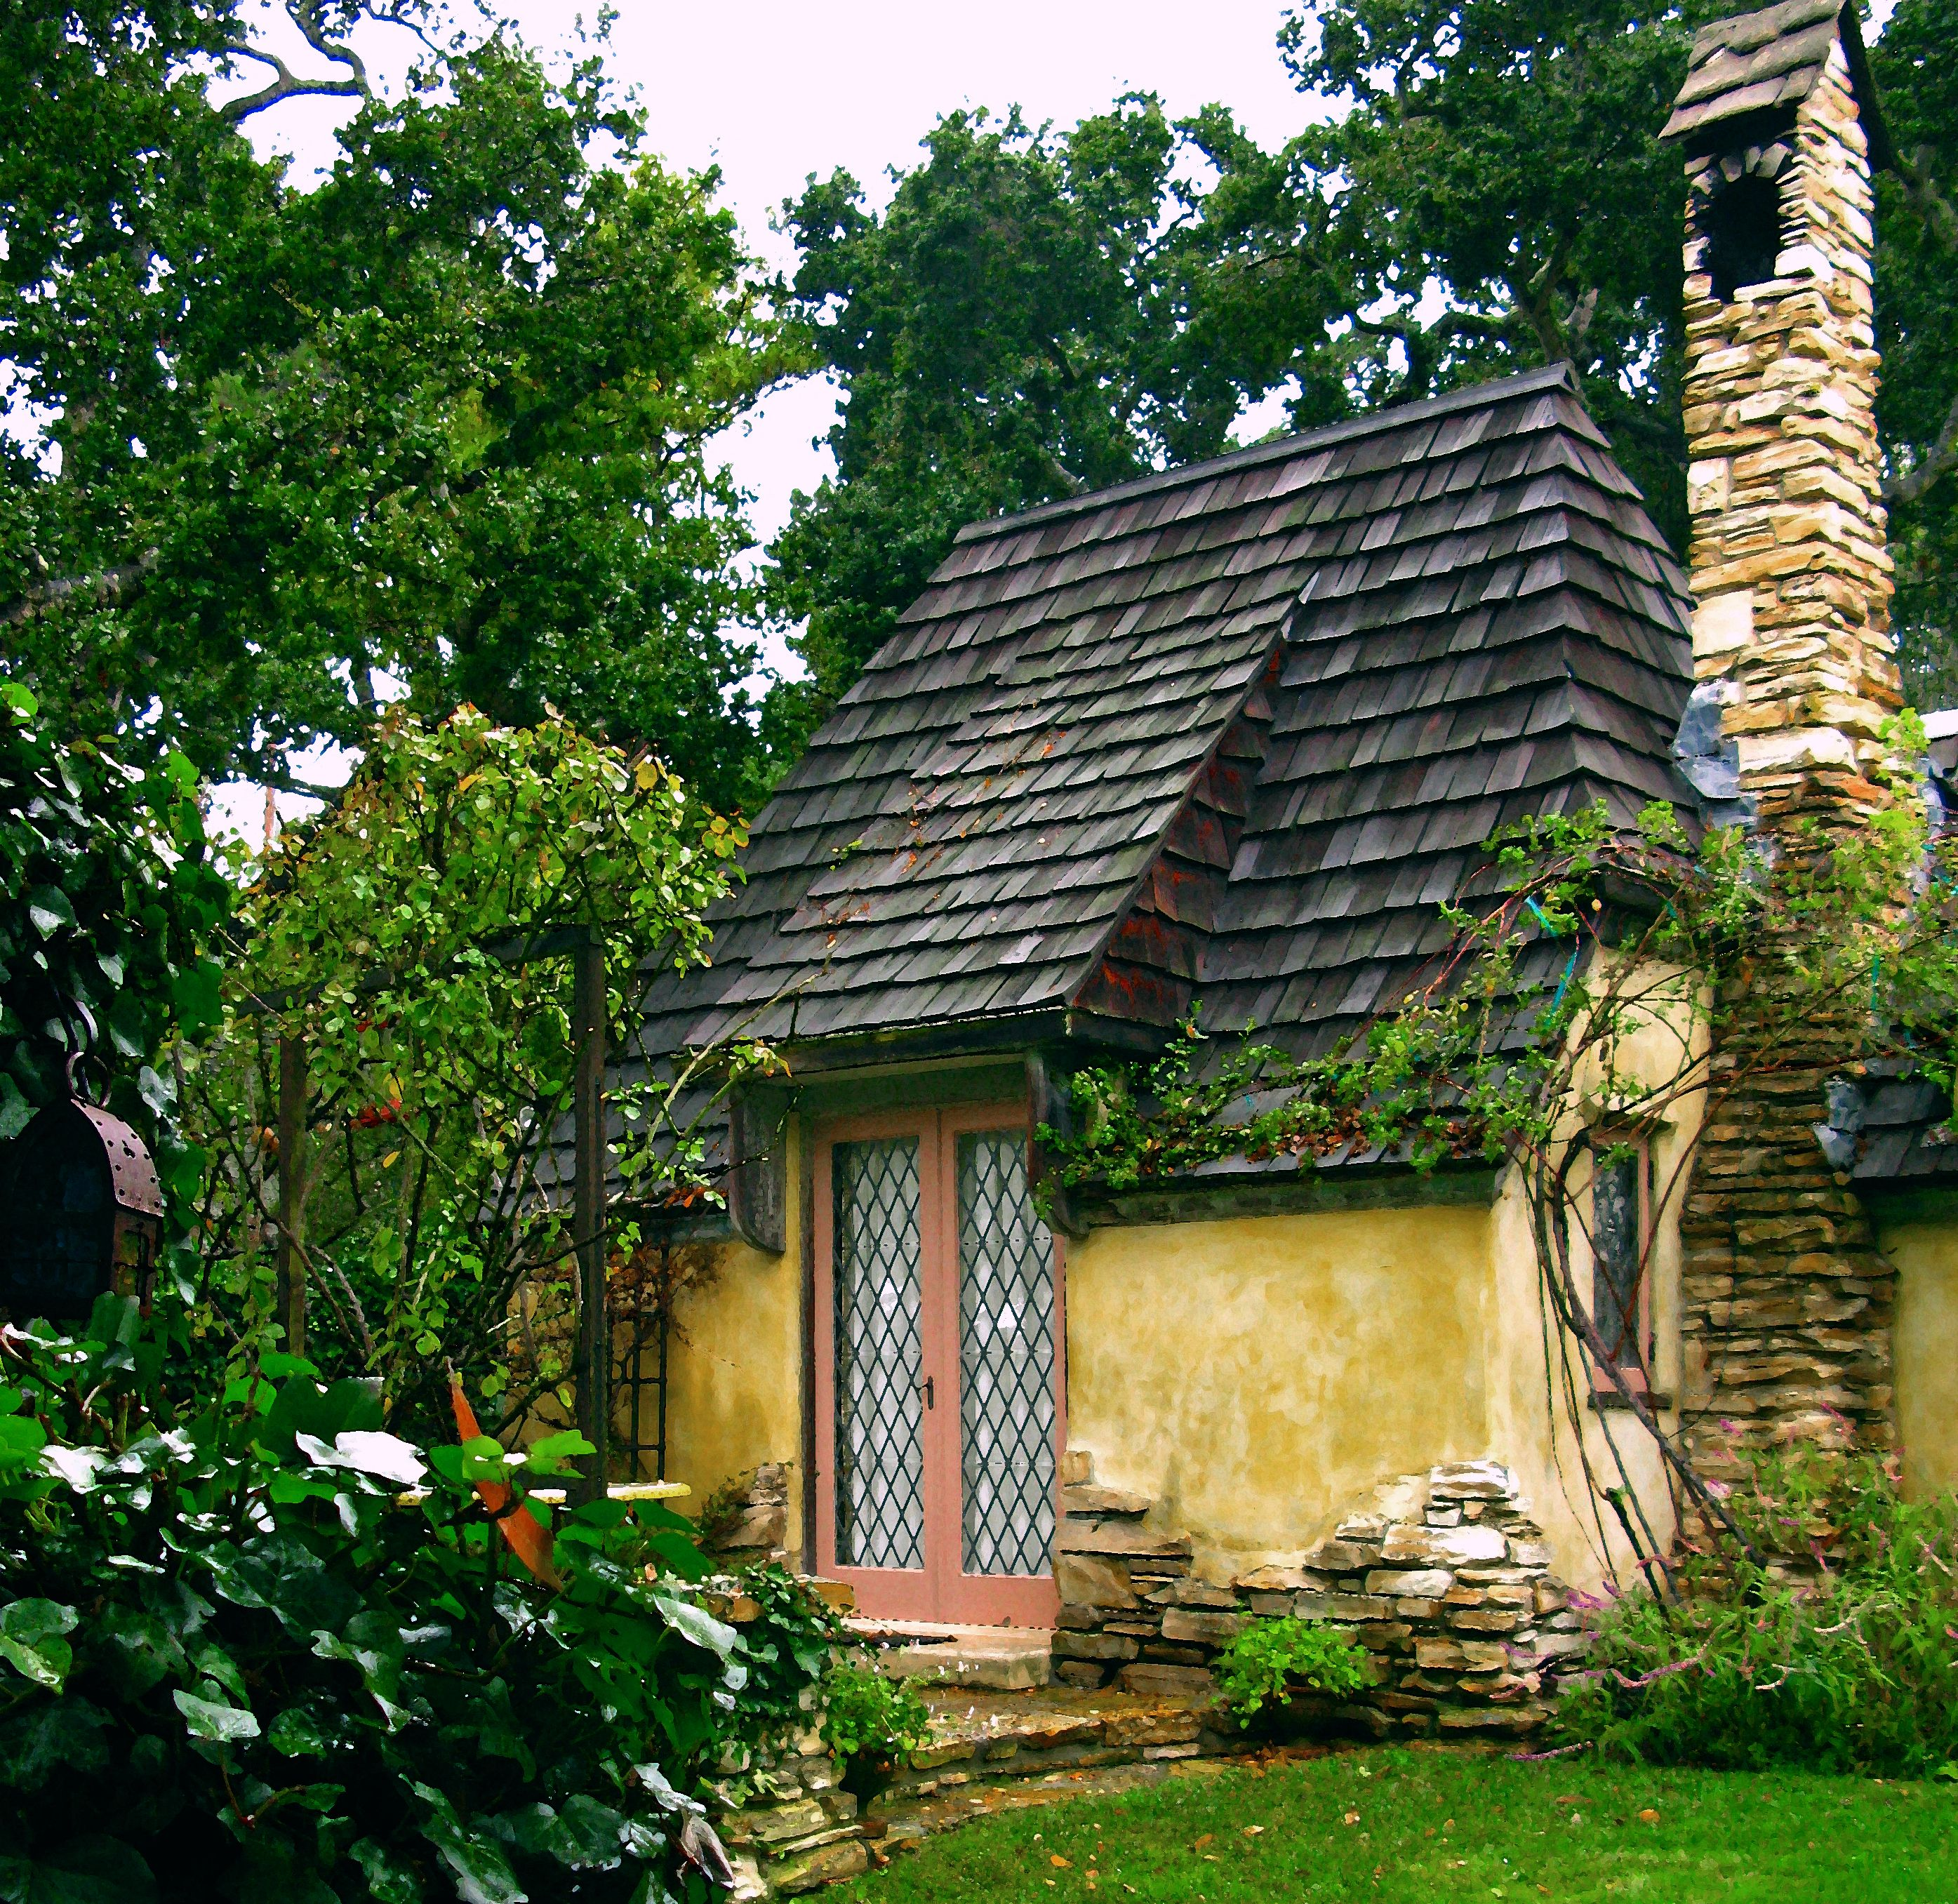 HUGH STOCK'S FAIRYTALE COTTAGES BY THE SEA